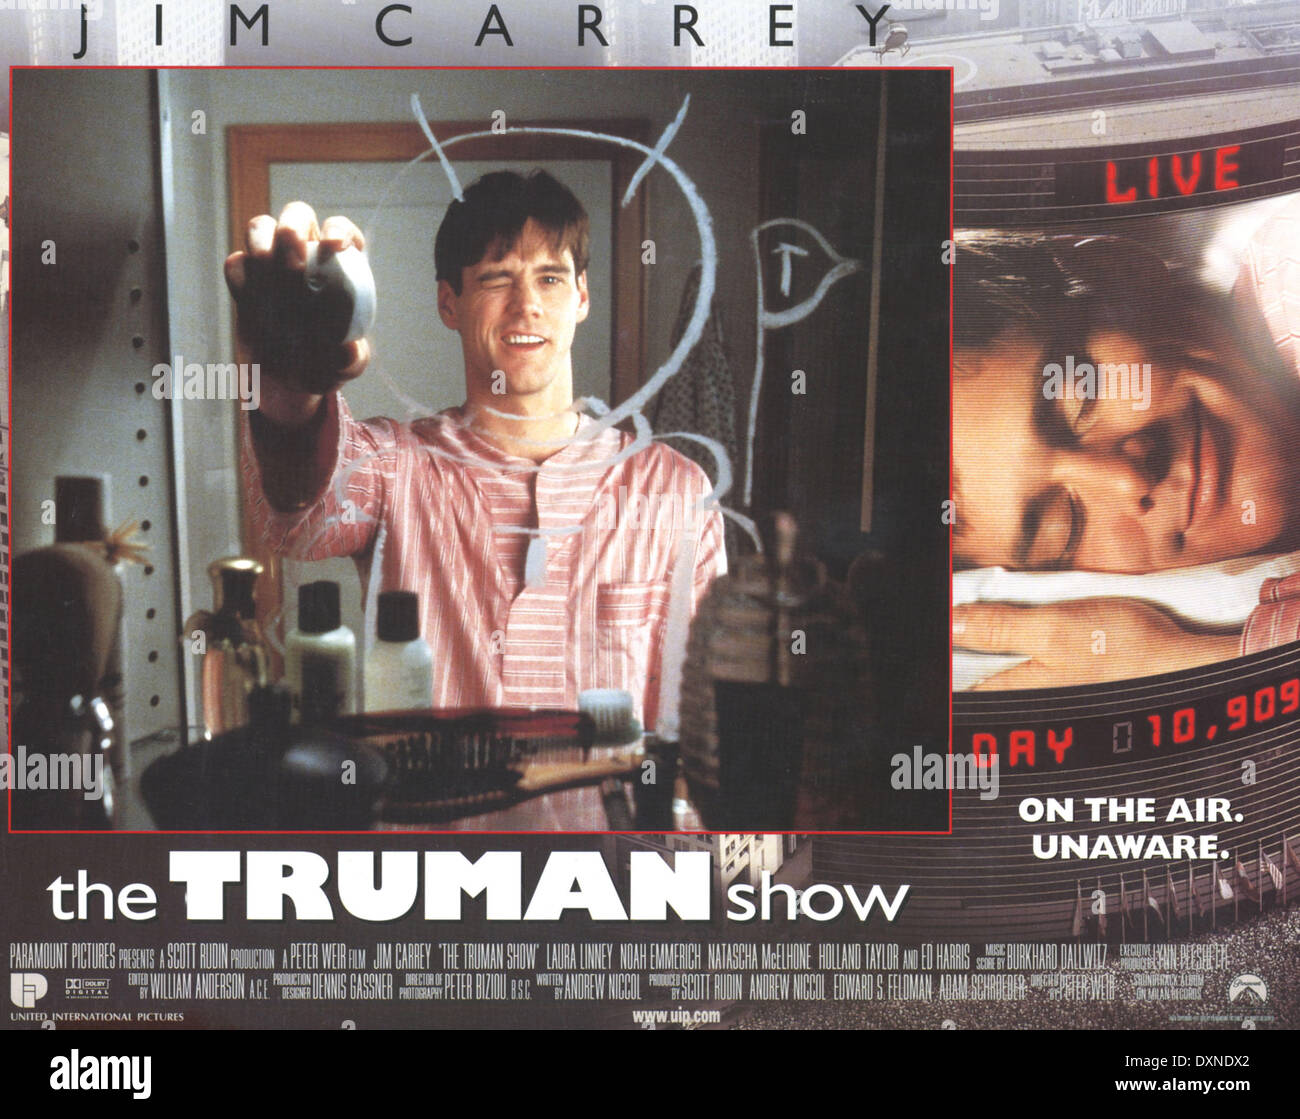 the truman show belonging The truman show is a 1998 american satirical science fiction film directed by peter weir, produced by scott rudin, andrew niccol, edward s feldman, and adam schroeder, and written by niccol.